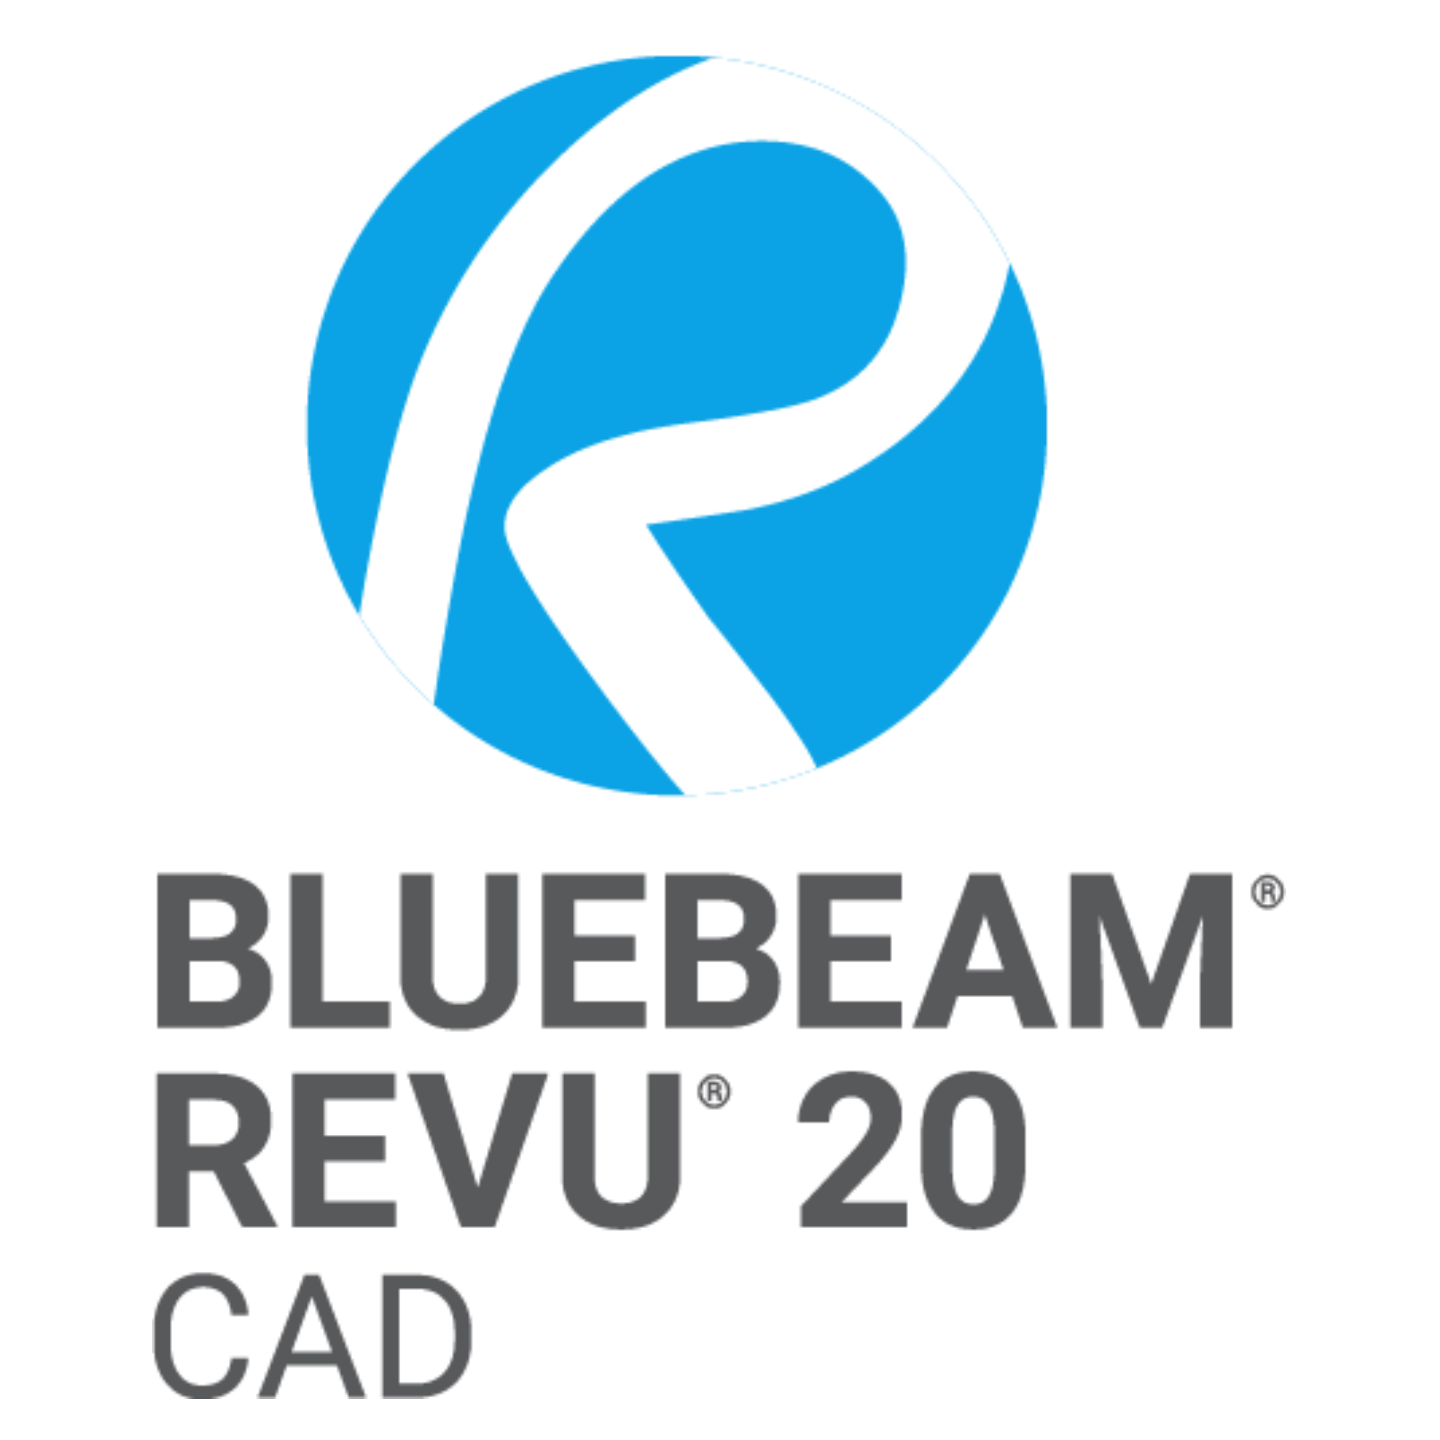 BLUEBEAM REVU 2020 CAD  BUNDLED WITH NEW MAINTENANCE & SUPPORT